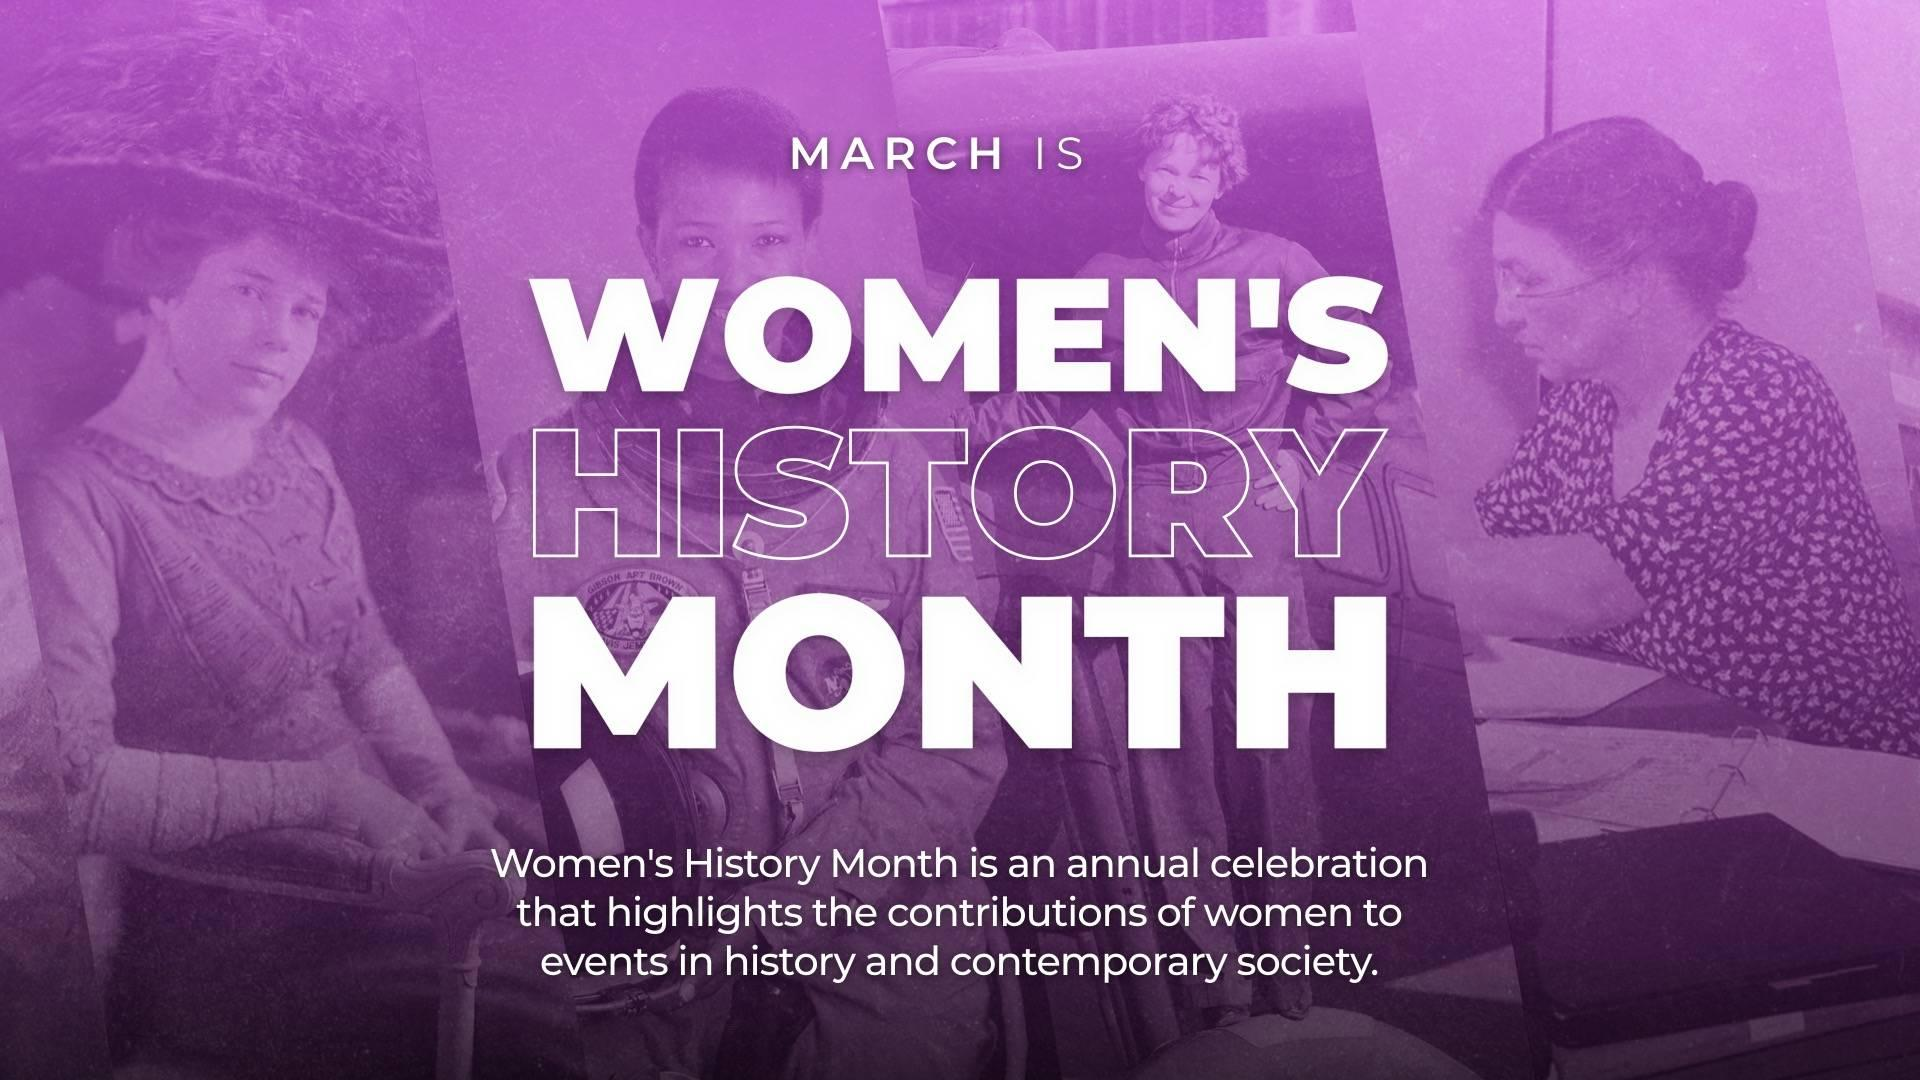 Women's History Month Digital Signage Template